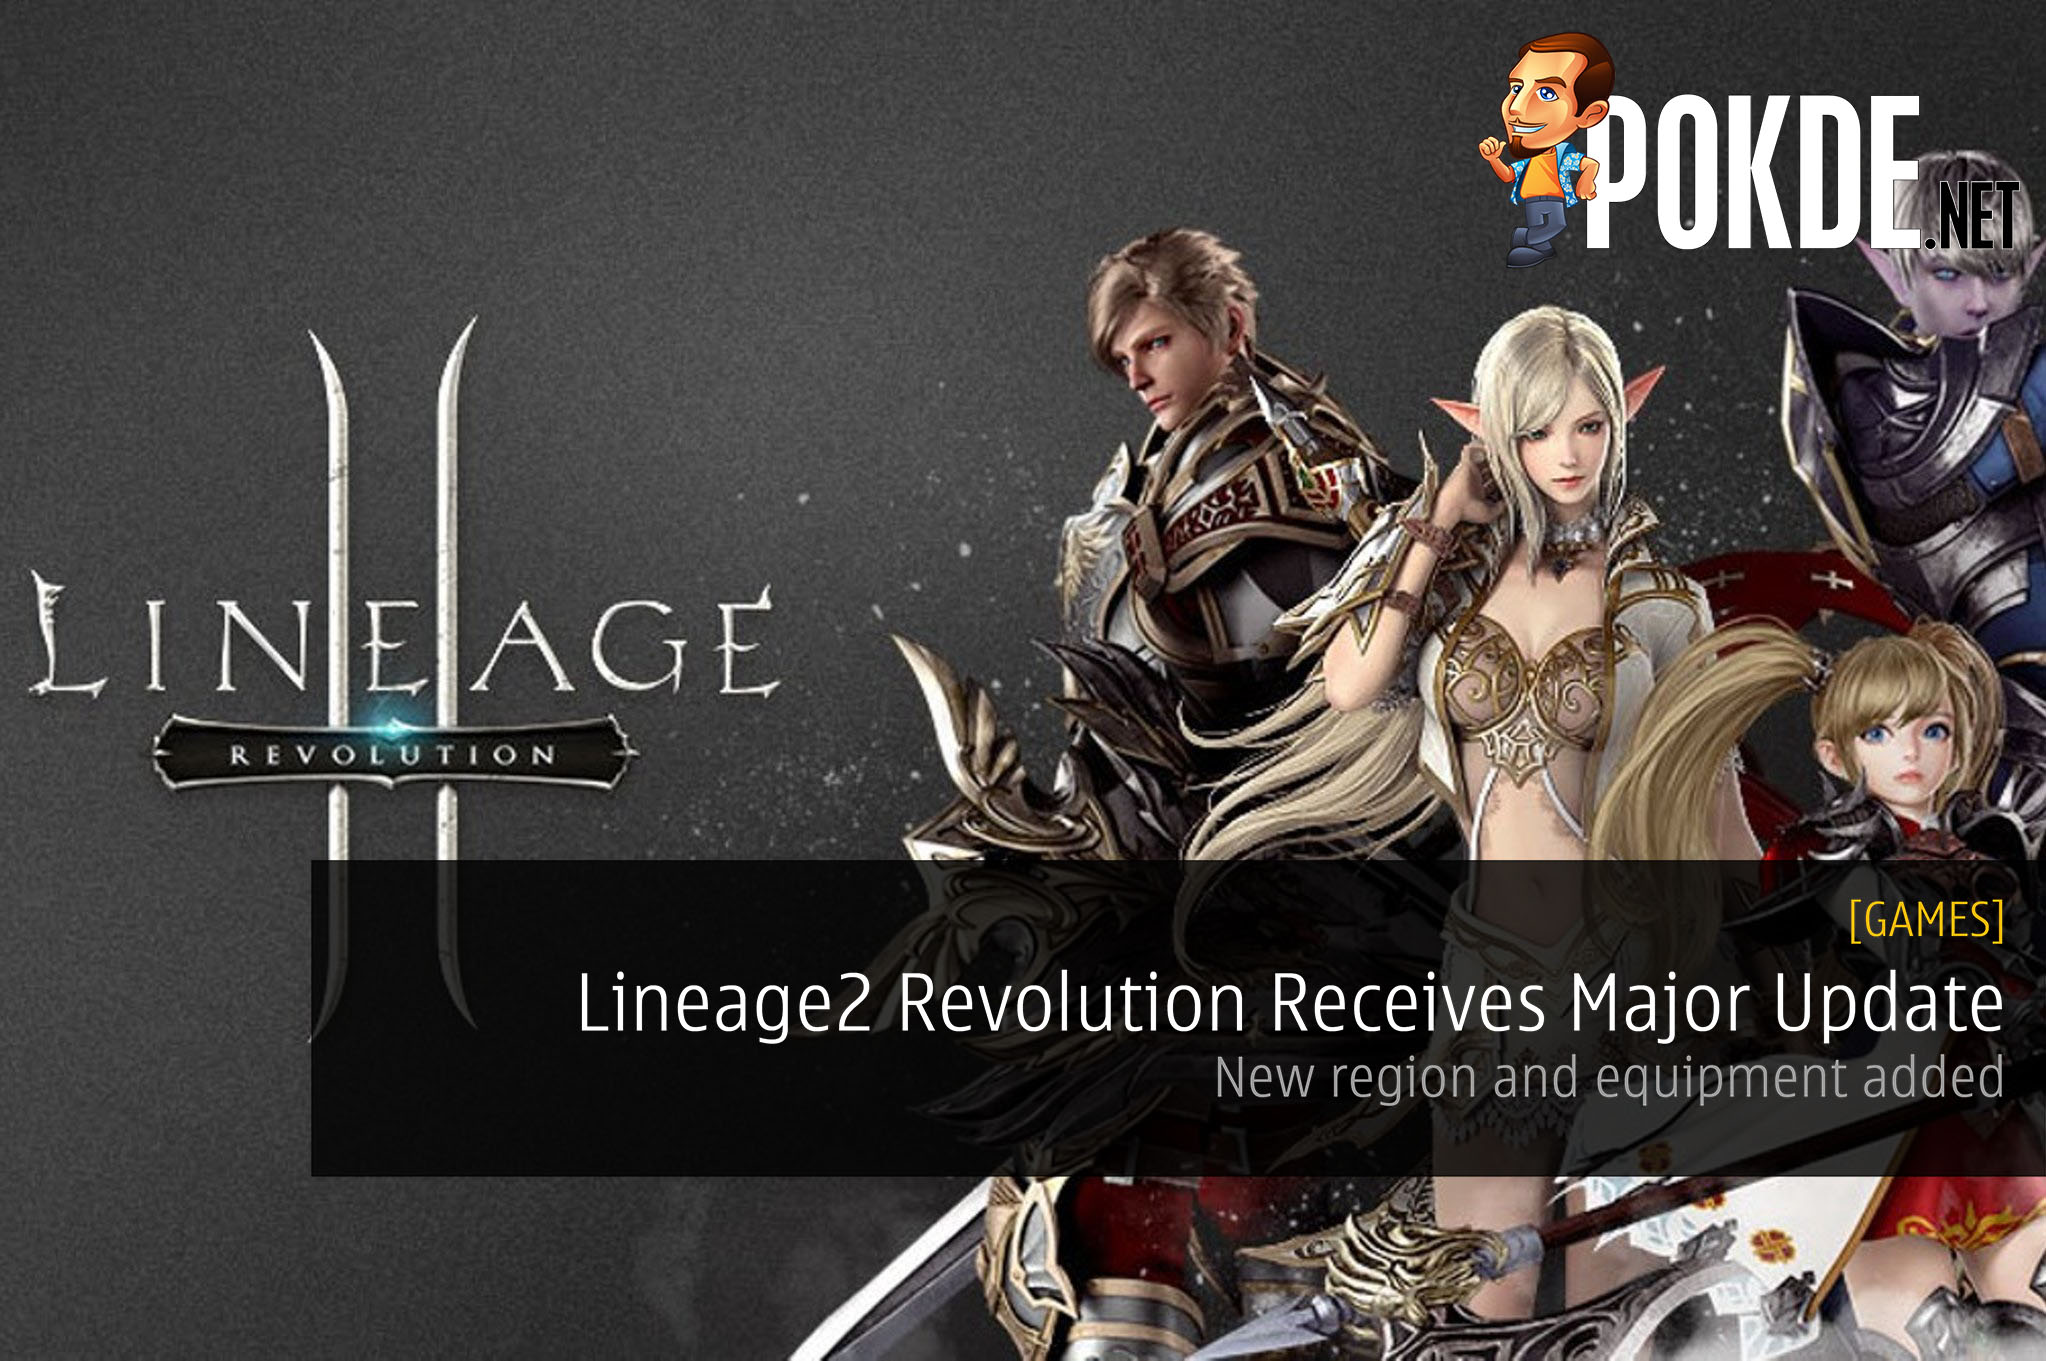 Lineage2 Revolution Receives Major Update - New region and equipment added 29